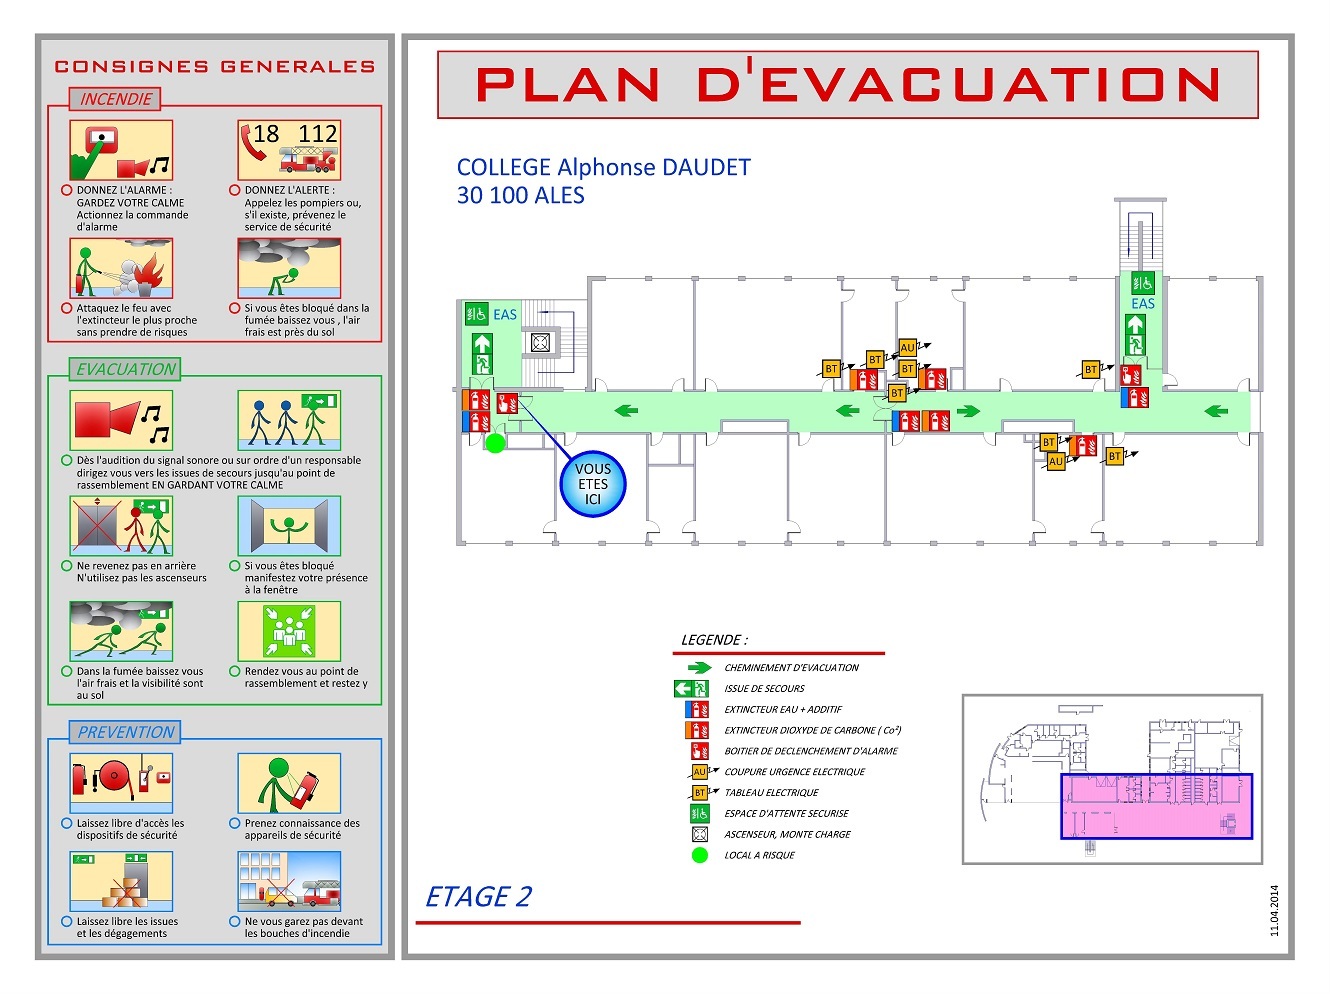 Plans s curit incendie plans evacuation s curit incendie for Les plans de lowe